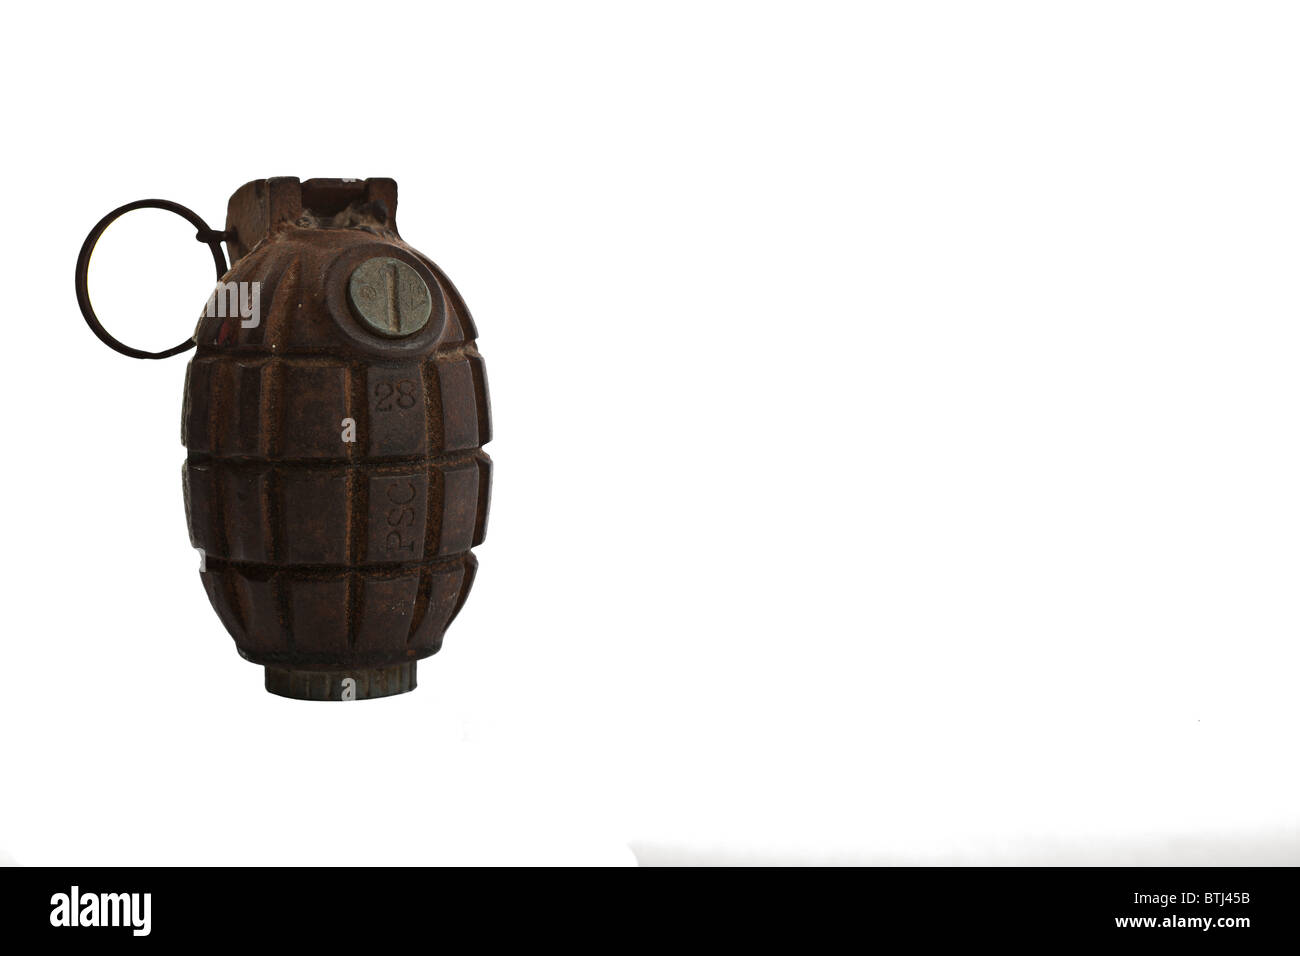 An authentic antique No. 36M MkI Mills Bomb or as most commonly know, hand grenade, from 1940 - Stock Image